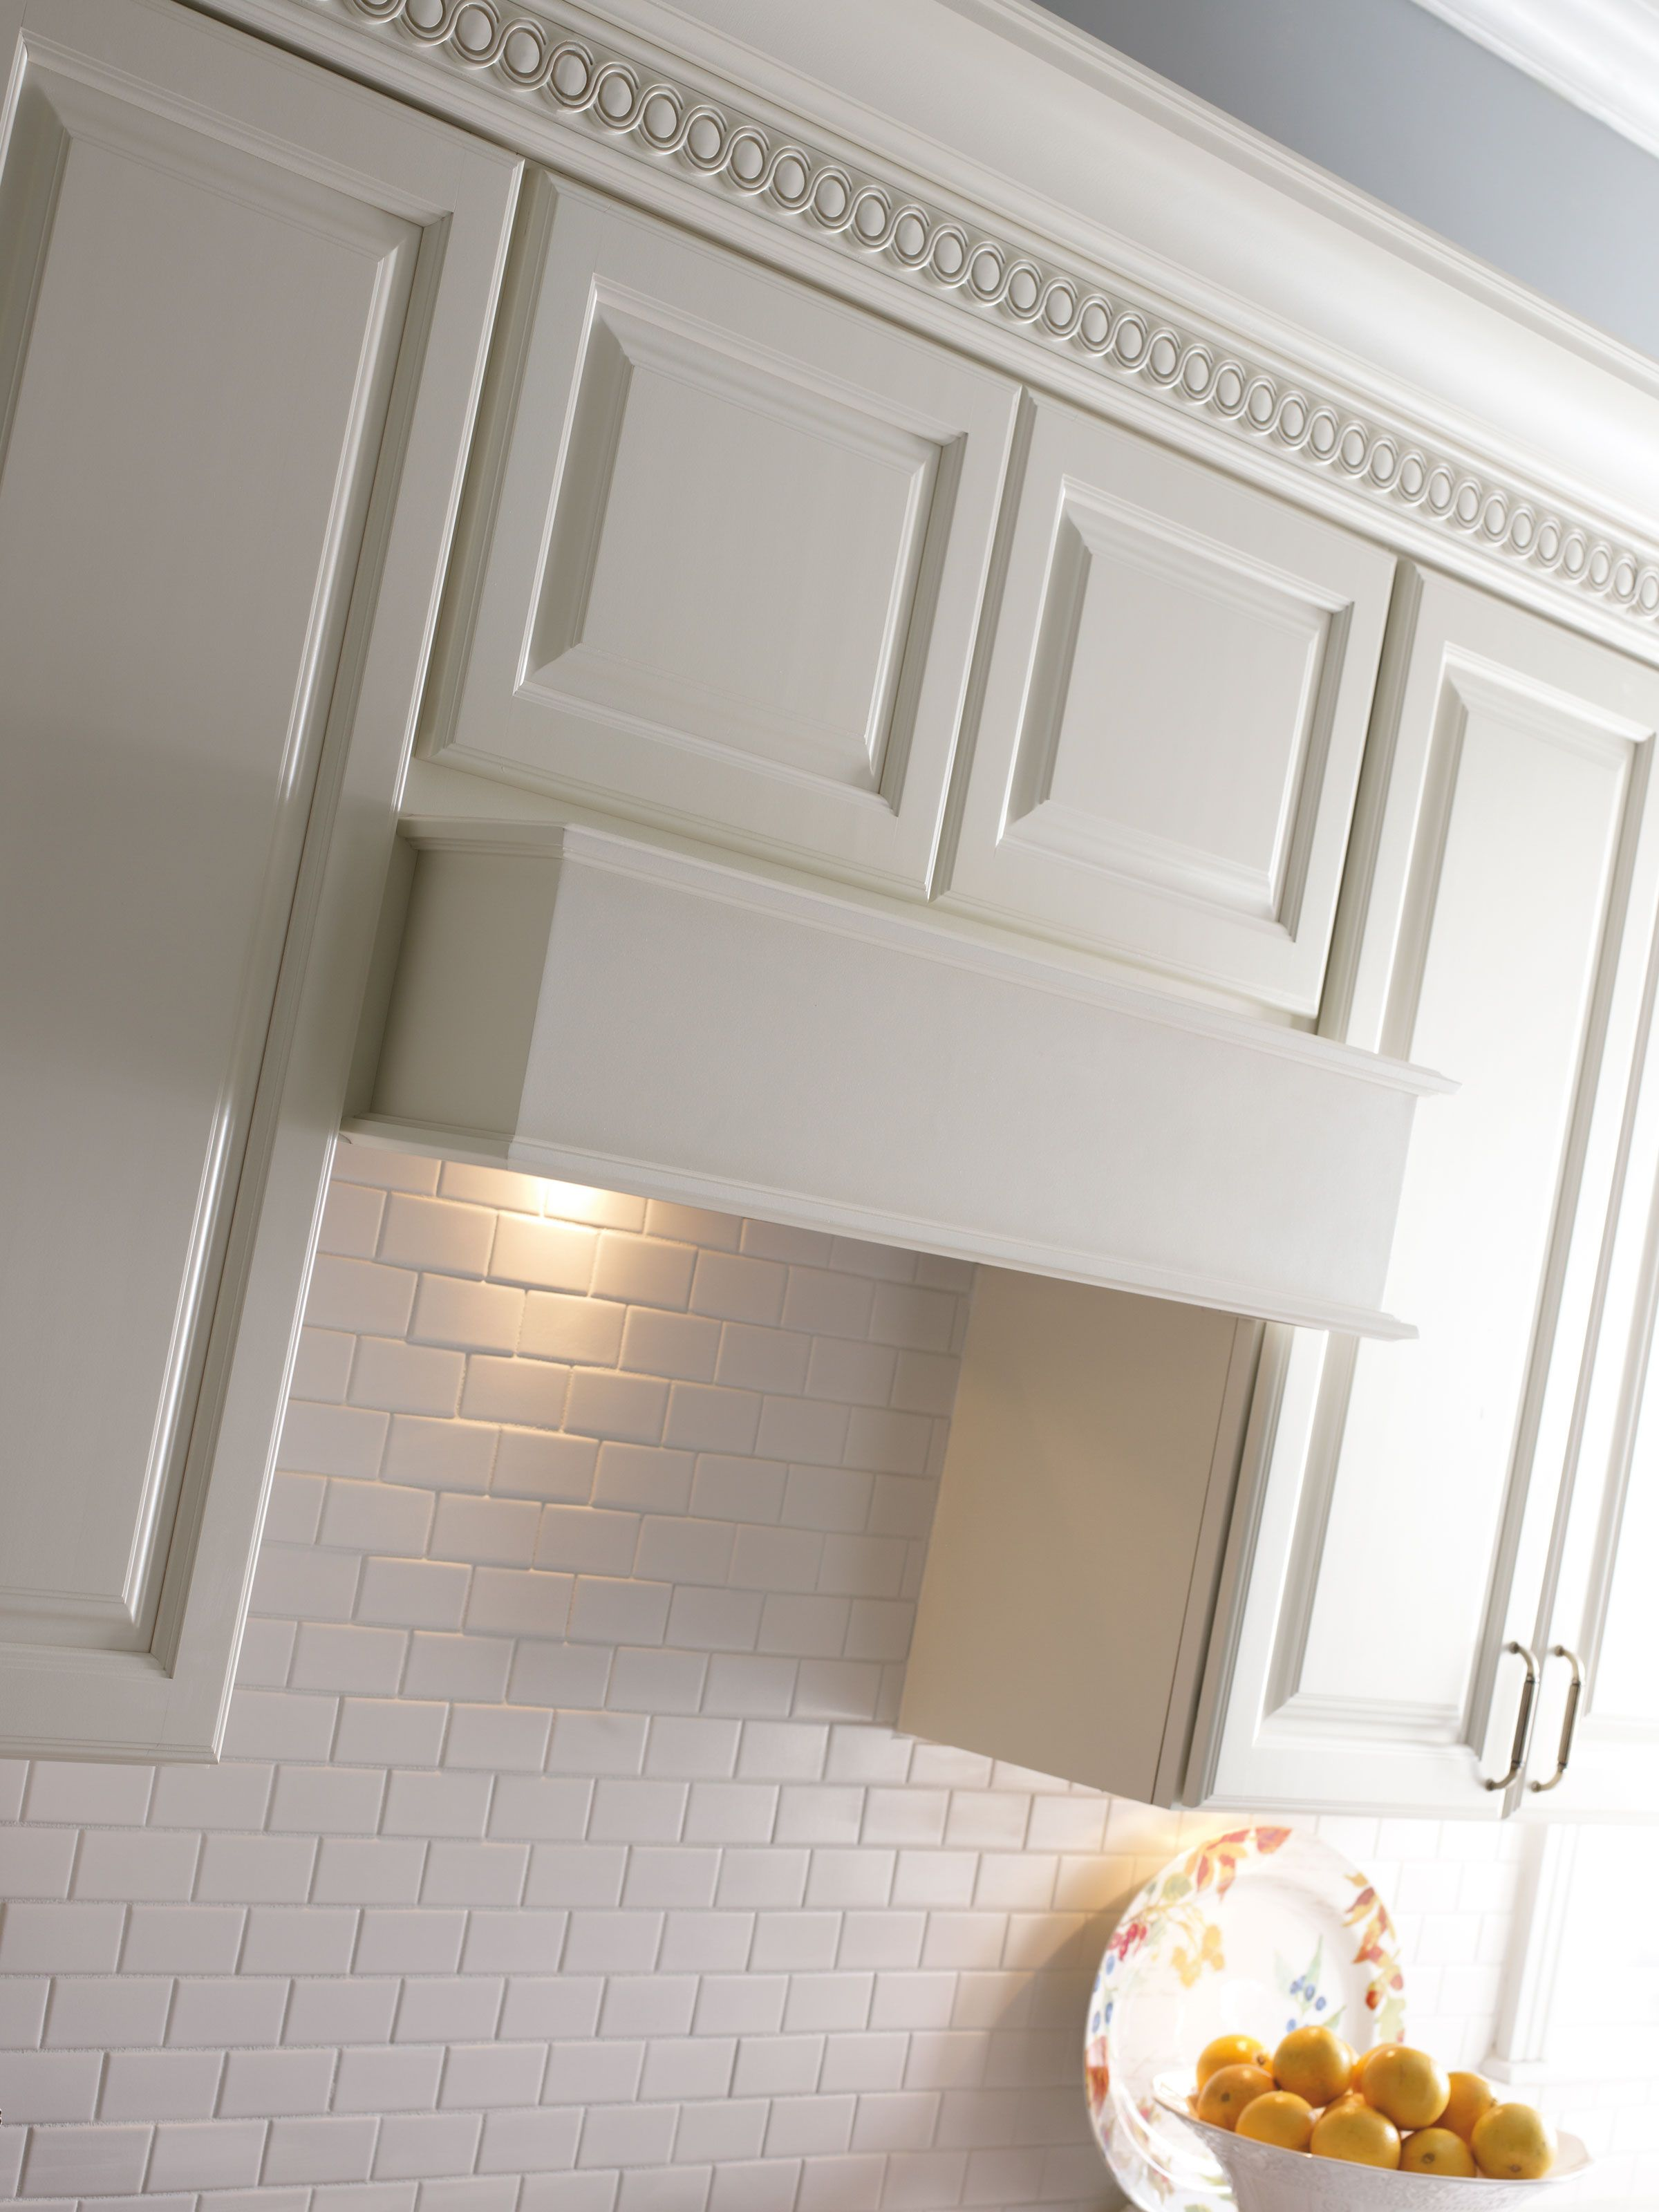 Canopy Wood Hoods Add A Perfect Mix Of Cabinetry Style To Conceal Ventilation In And Widths Schrock